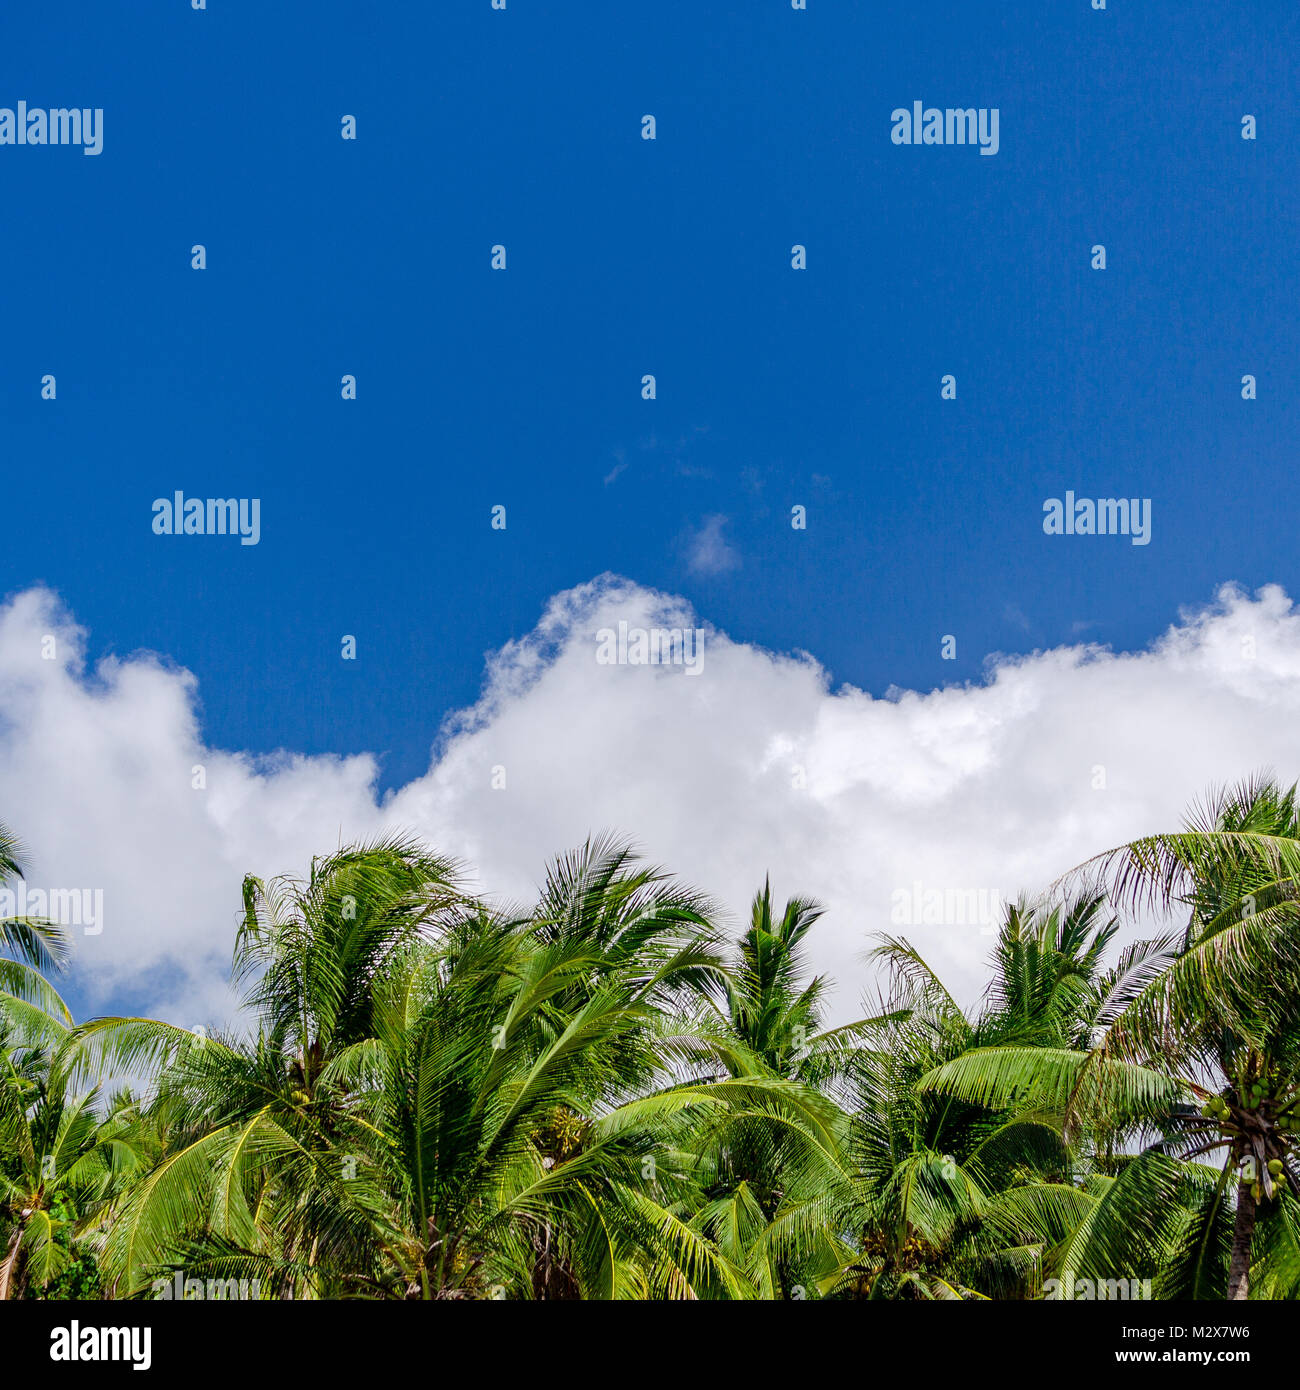 Coconut palm trees over blue sky background with copyspace Stock Photo